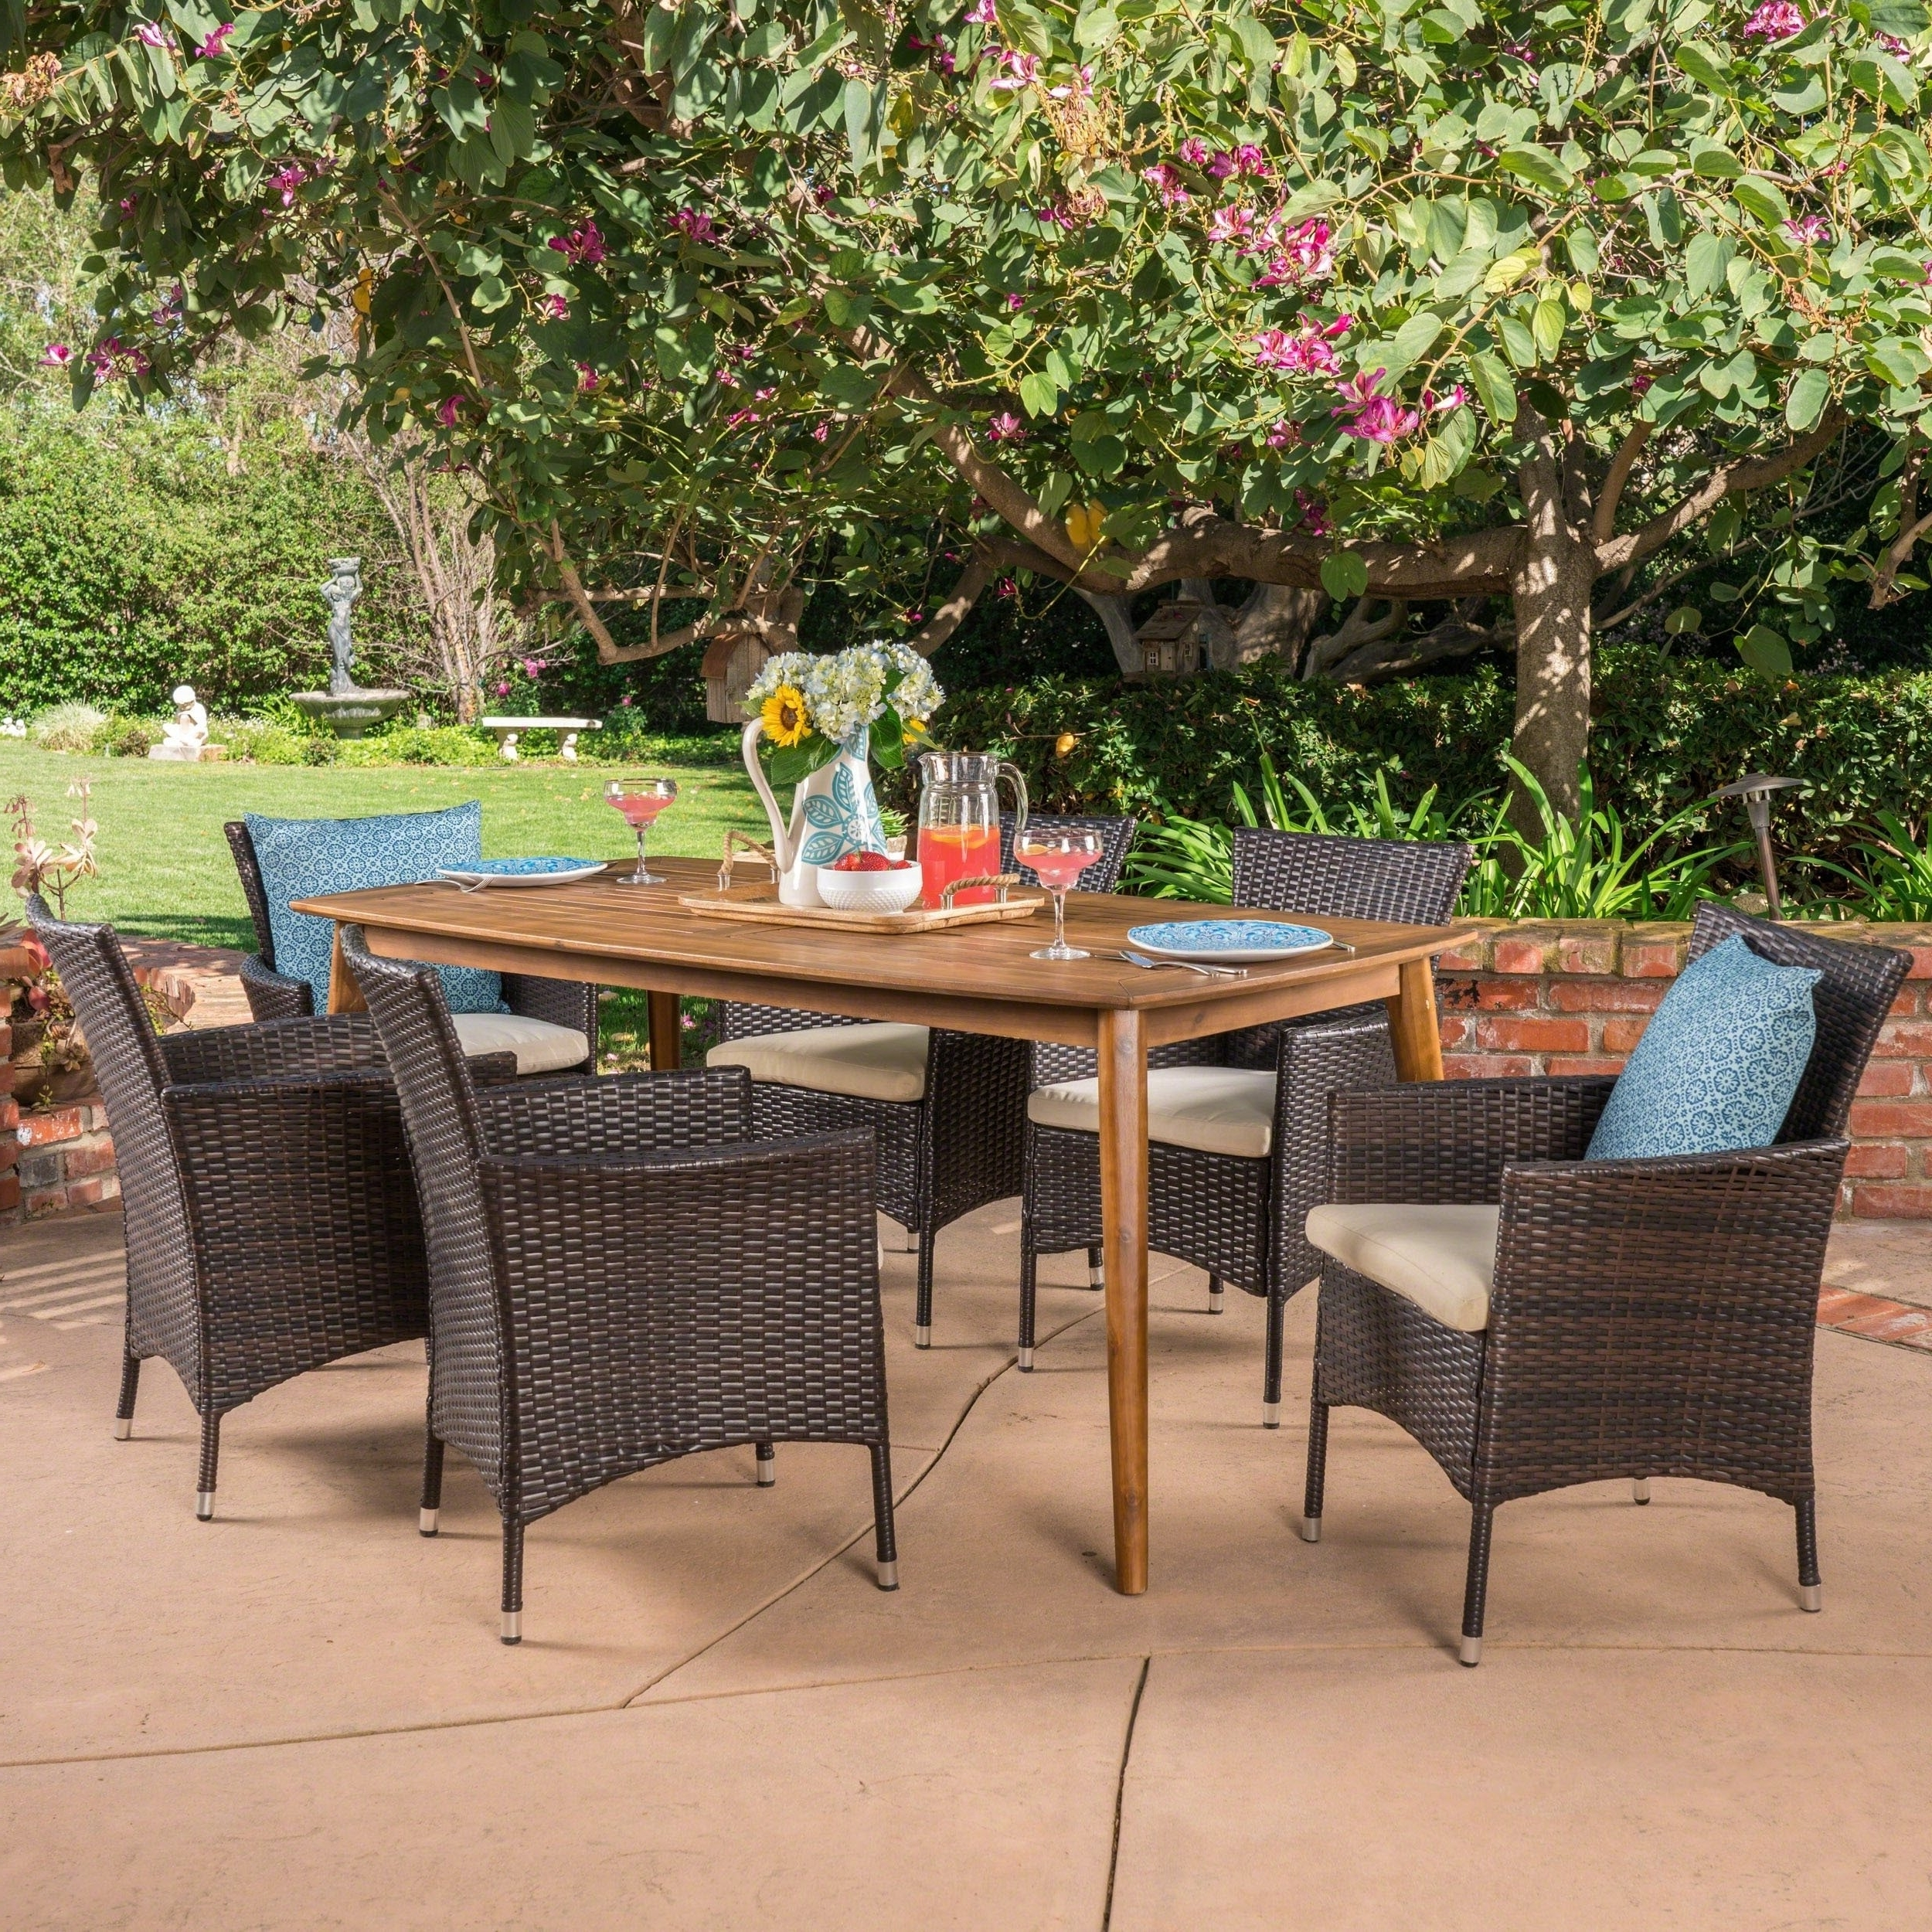 Famous Shop Jaxon Outdoor 7 Piece Multibrown Pe Wicker Dining Set With Throughout Jaxon 6 Piece Rectangle Dining Sets With Bench & Uph Chairs (View 9 of 25)